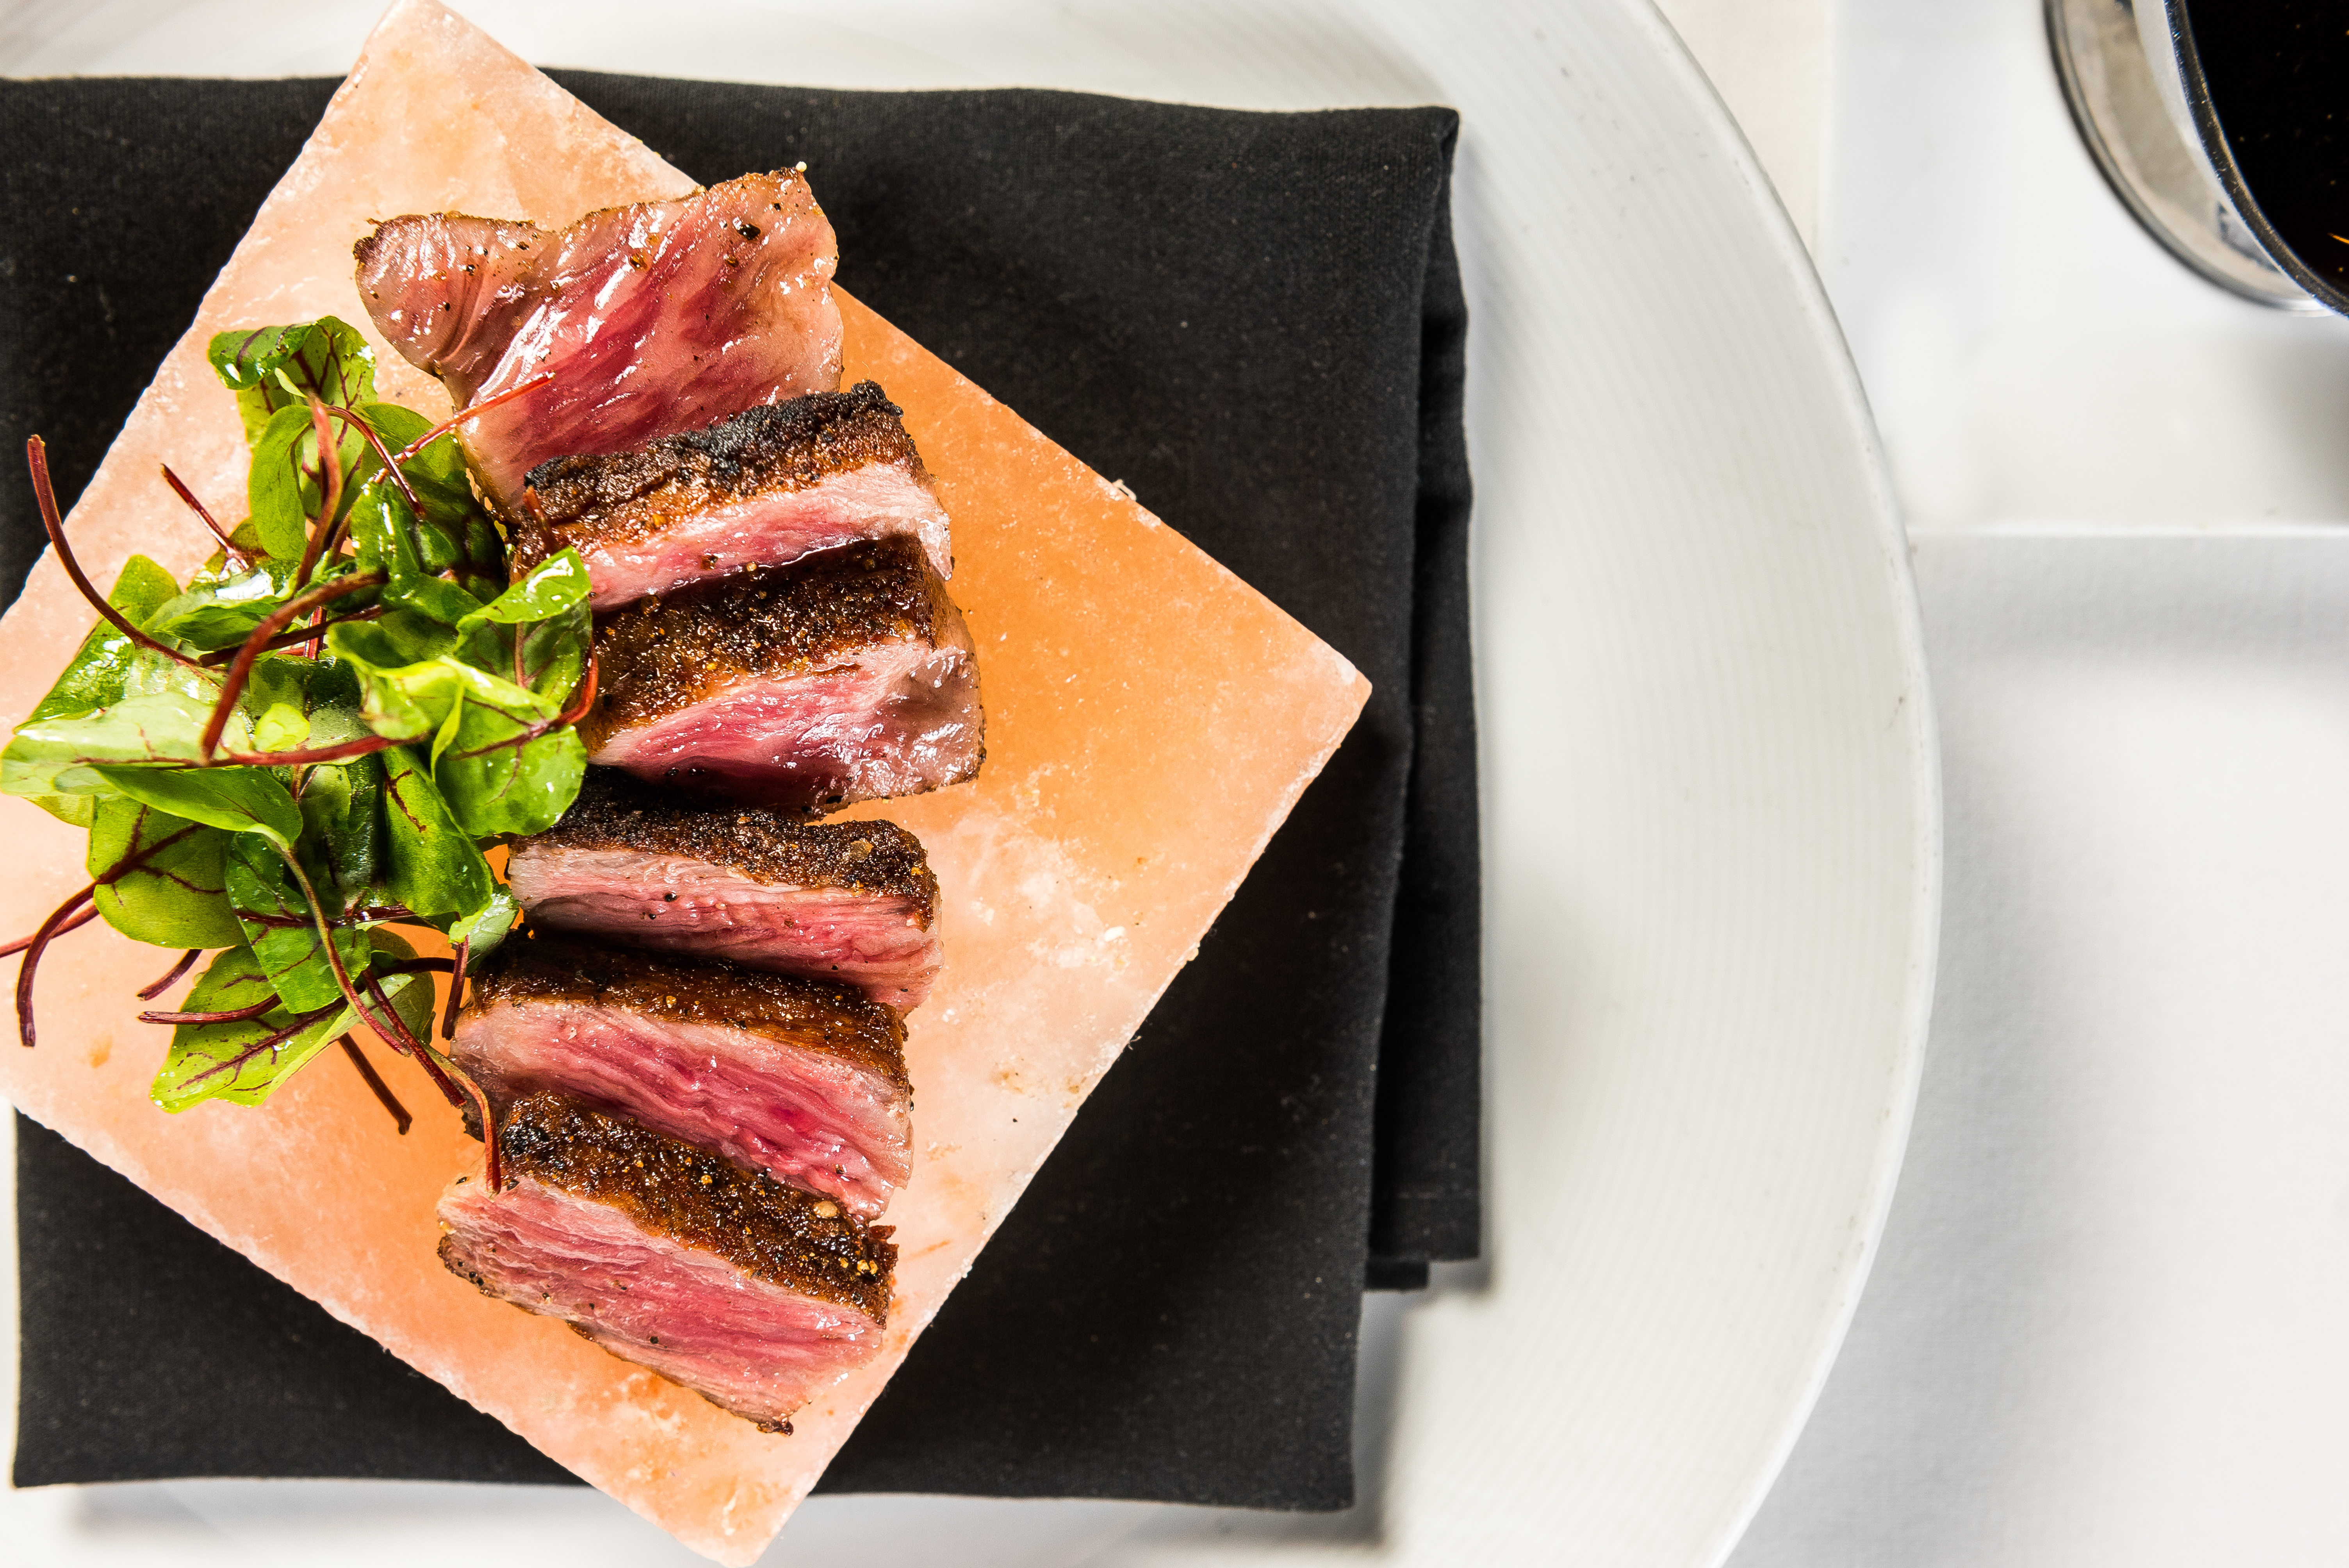 Chef Mike Ellis speedily sears a three-ounce portion on the plancha and serves it on a Himalayan salt block along with a citrus-y red veined sorrel salad and a soy-dashi dipping sauce that has a understated wasabi wallop. (Image: Courtesy Charlie Palmer Steak)